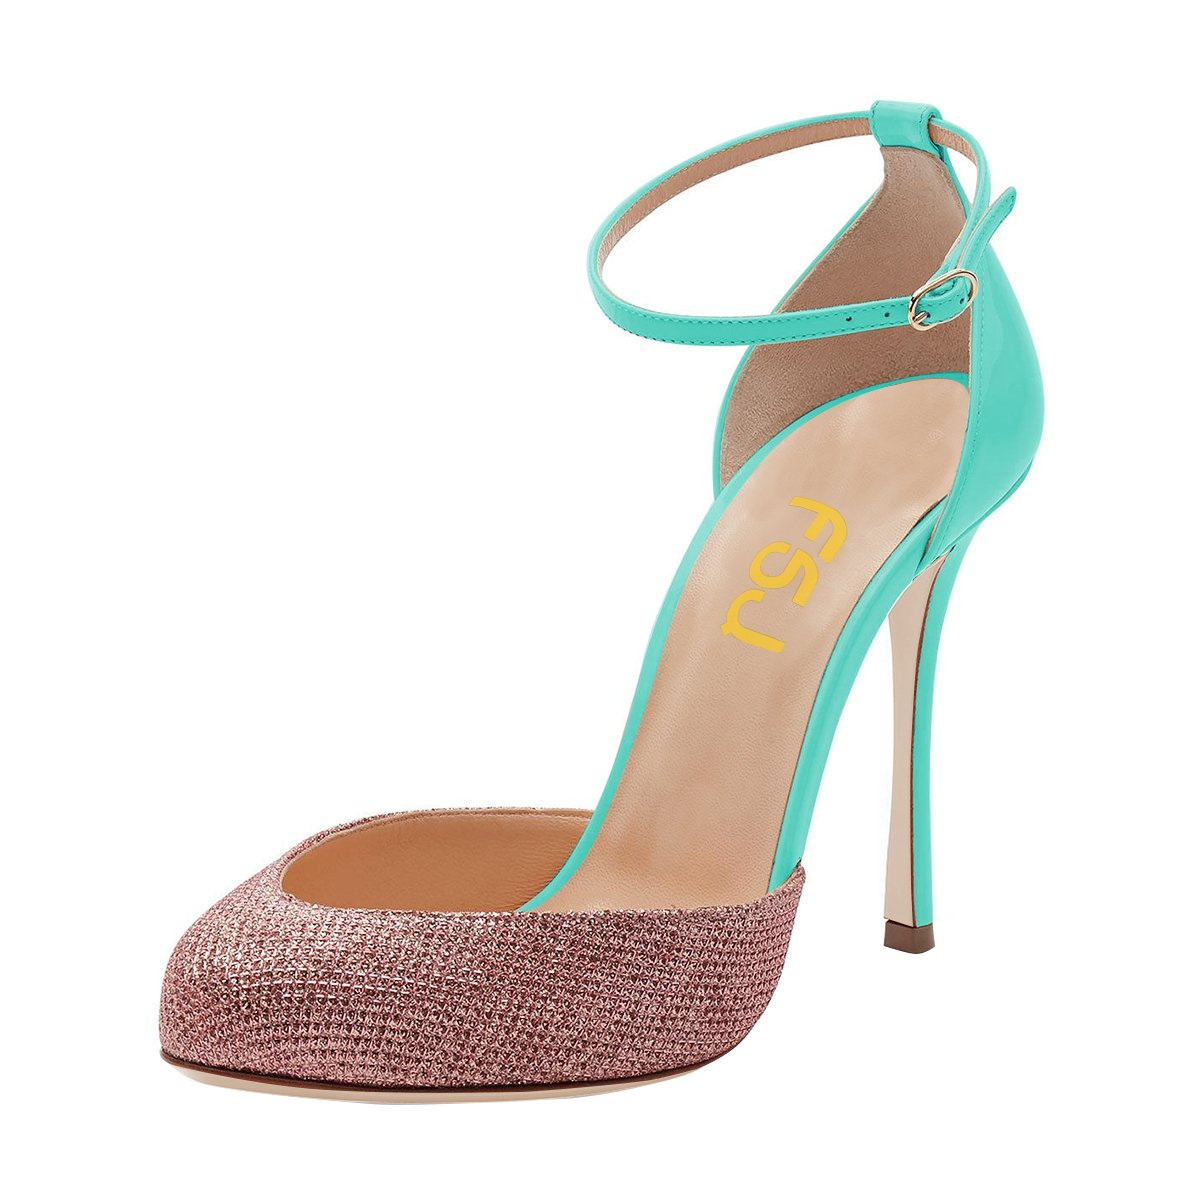 FSJ Women Fashion Almond Toe Ankle Strap D'Orsay Pumps High Heels Party Prom Sandals Size 4-15 US B07863JCLT 8.5 B(M) US|Turquoise